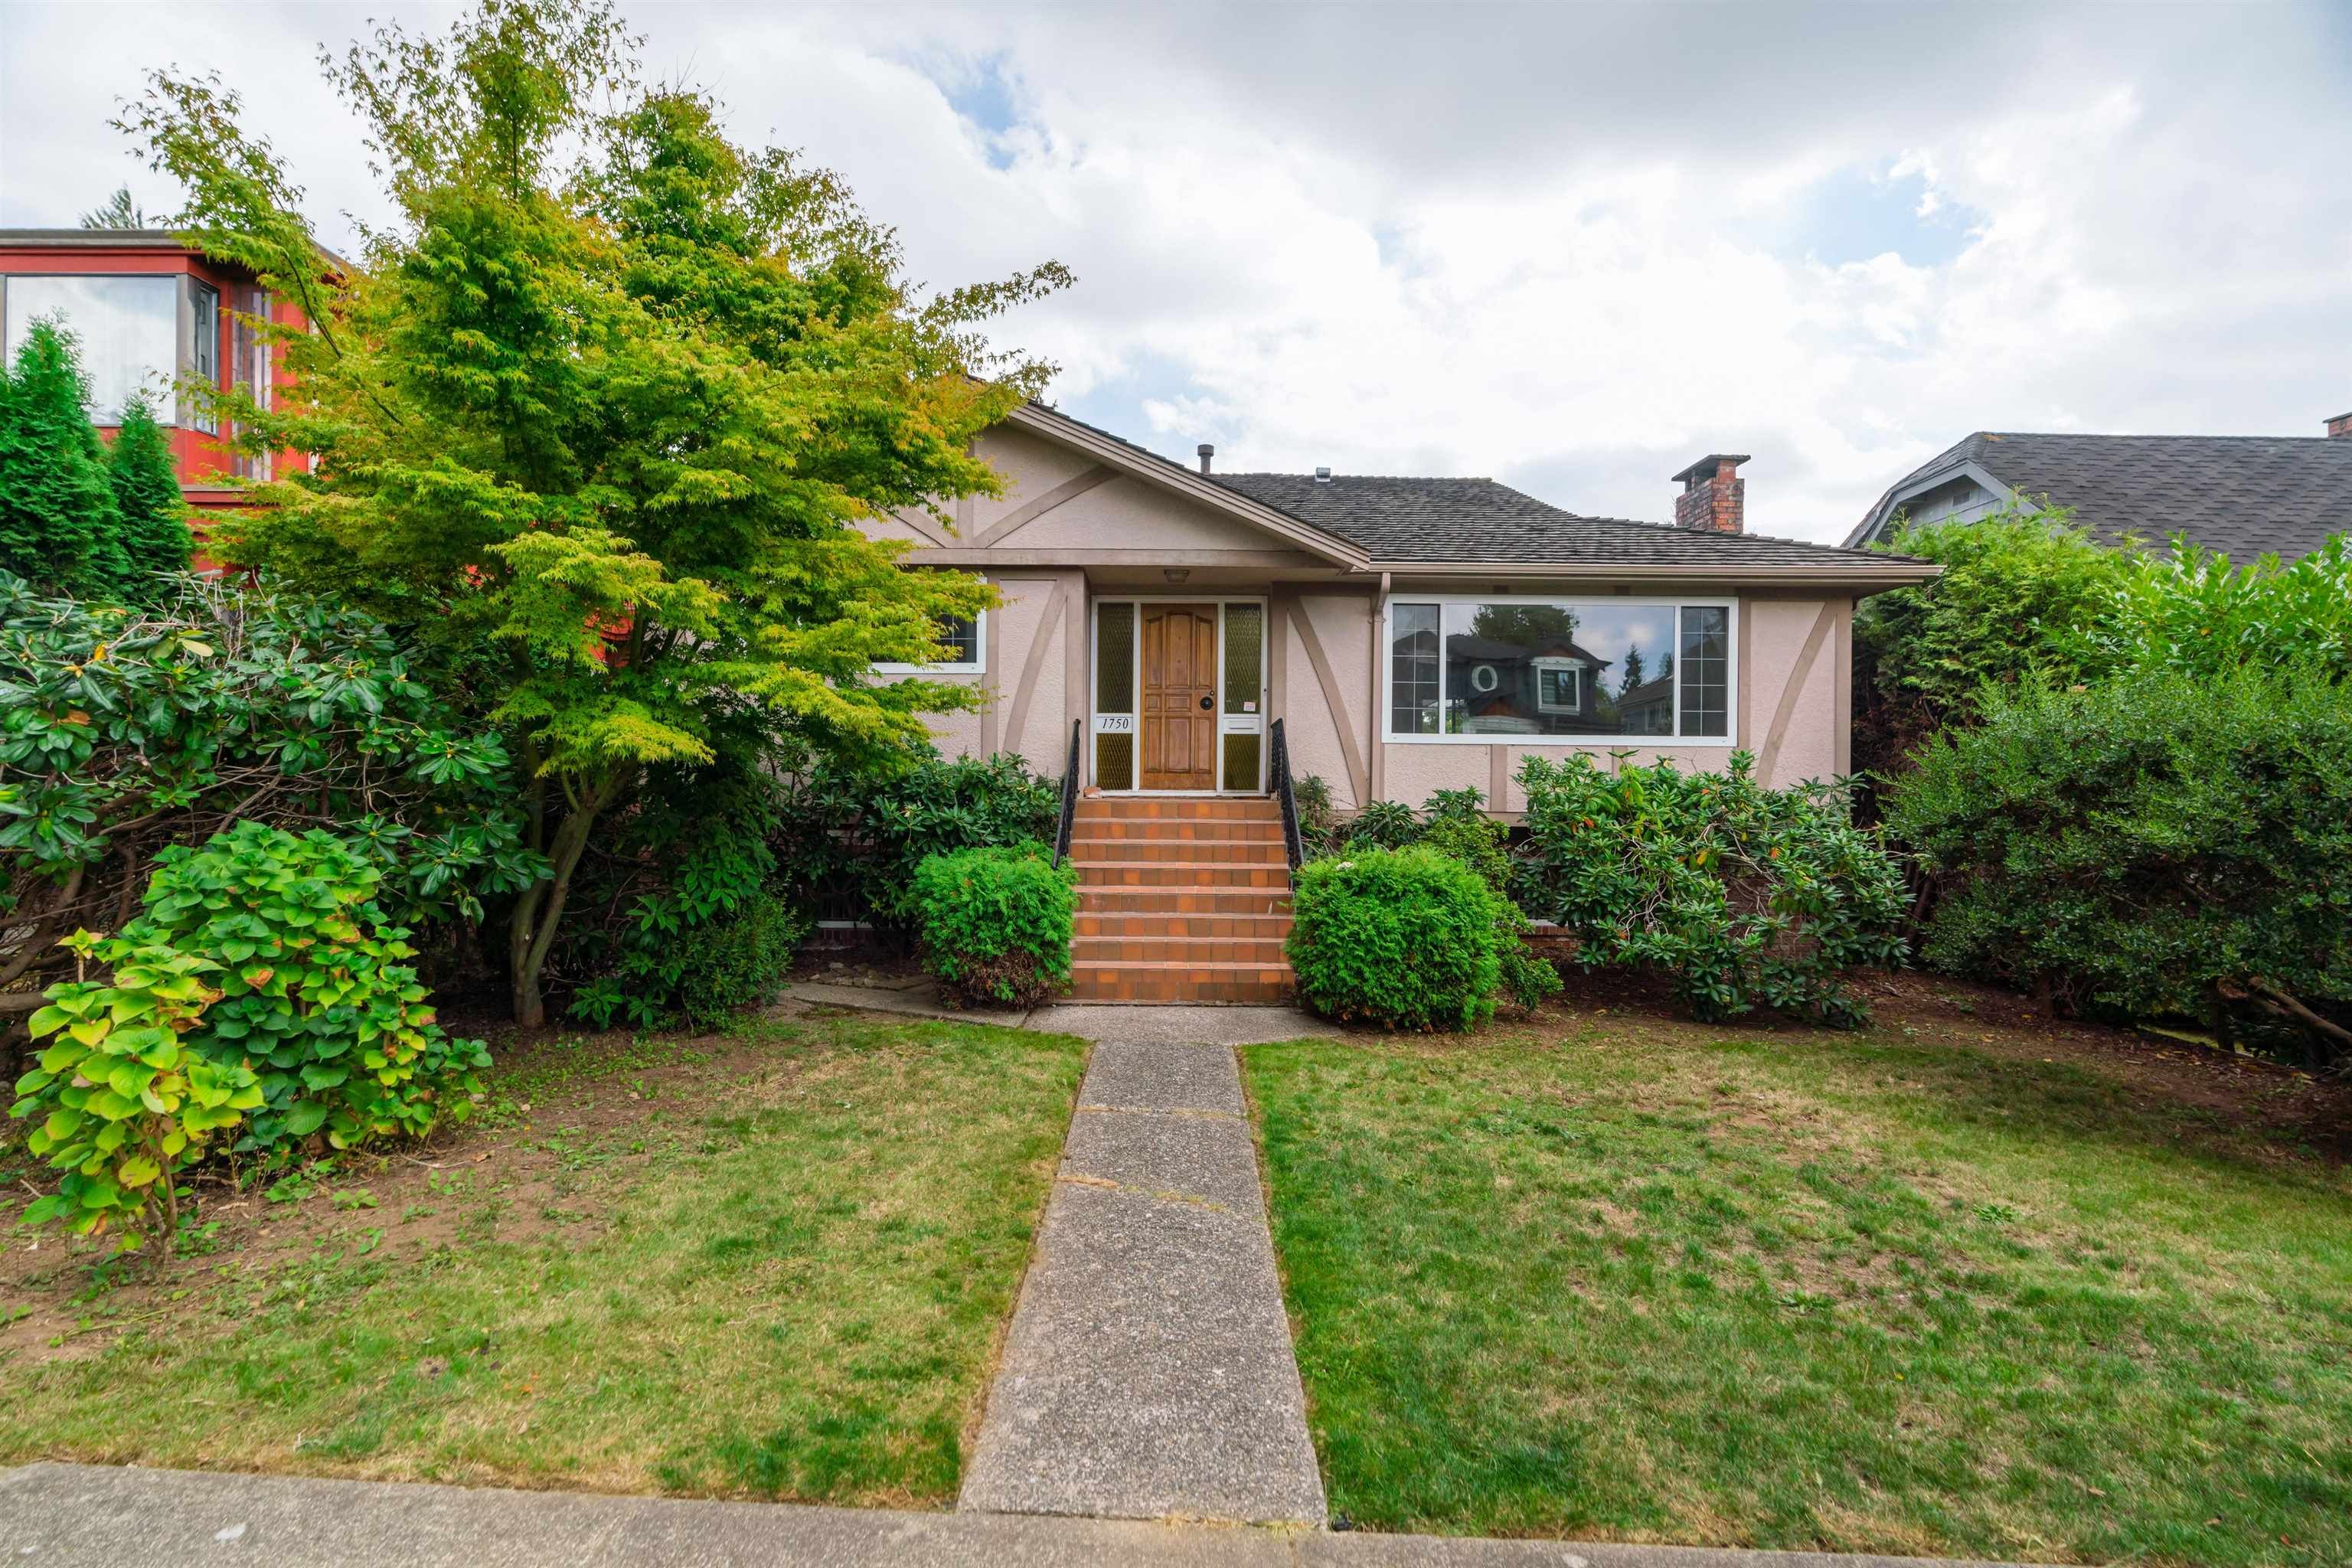 Main Photo: 1750 W 60TH Avenue in Vancouver: South Granville House for sale (Vancouver West)  : MLS®# R2616924